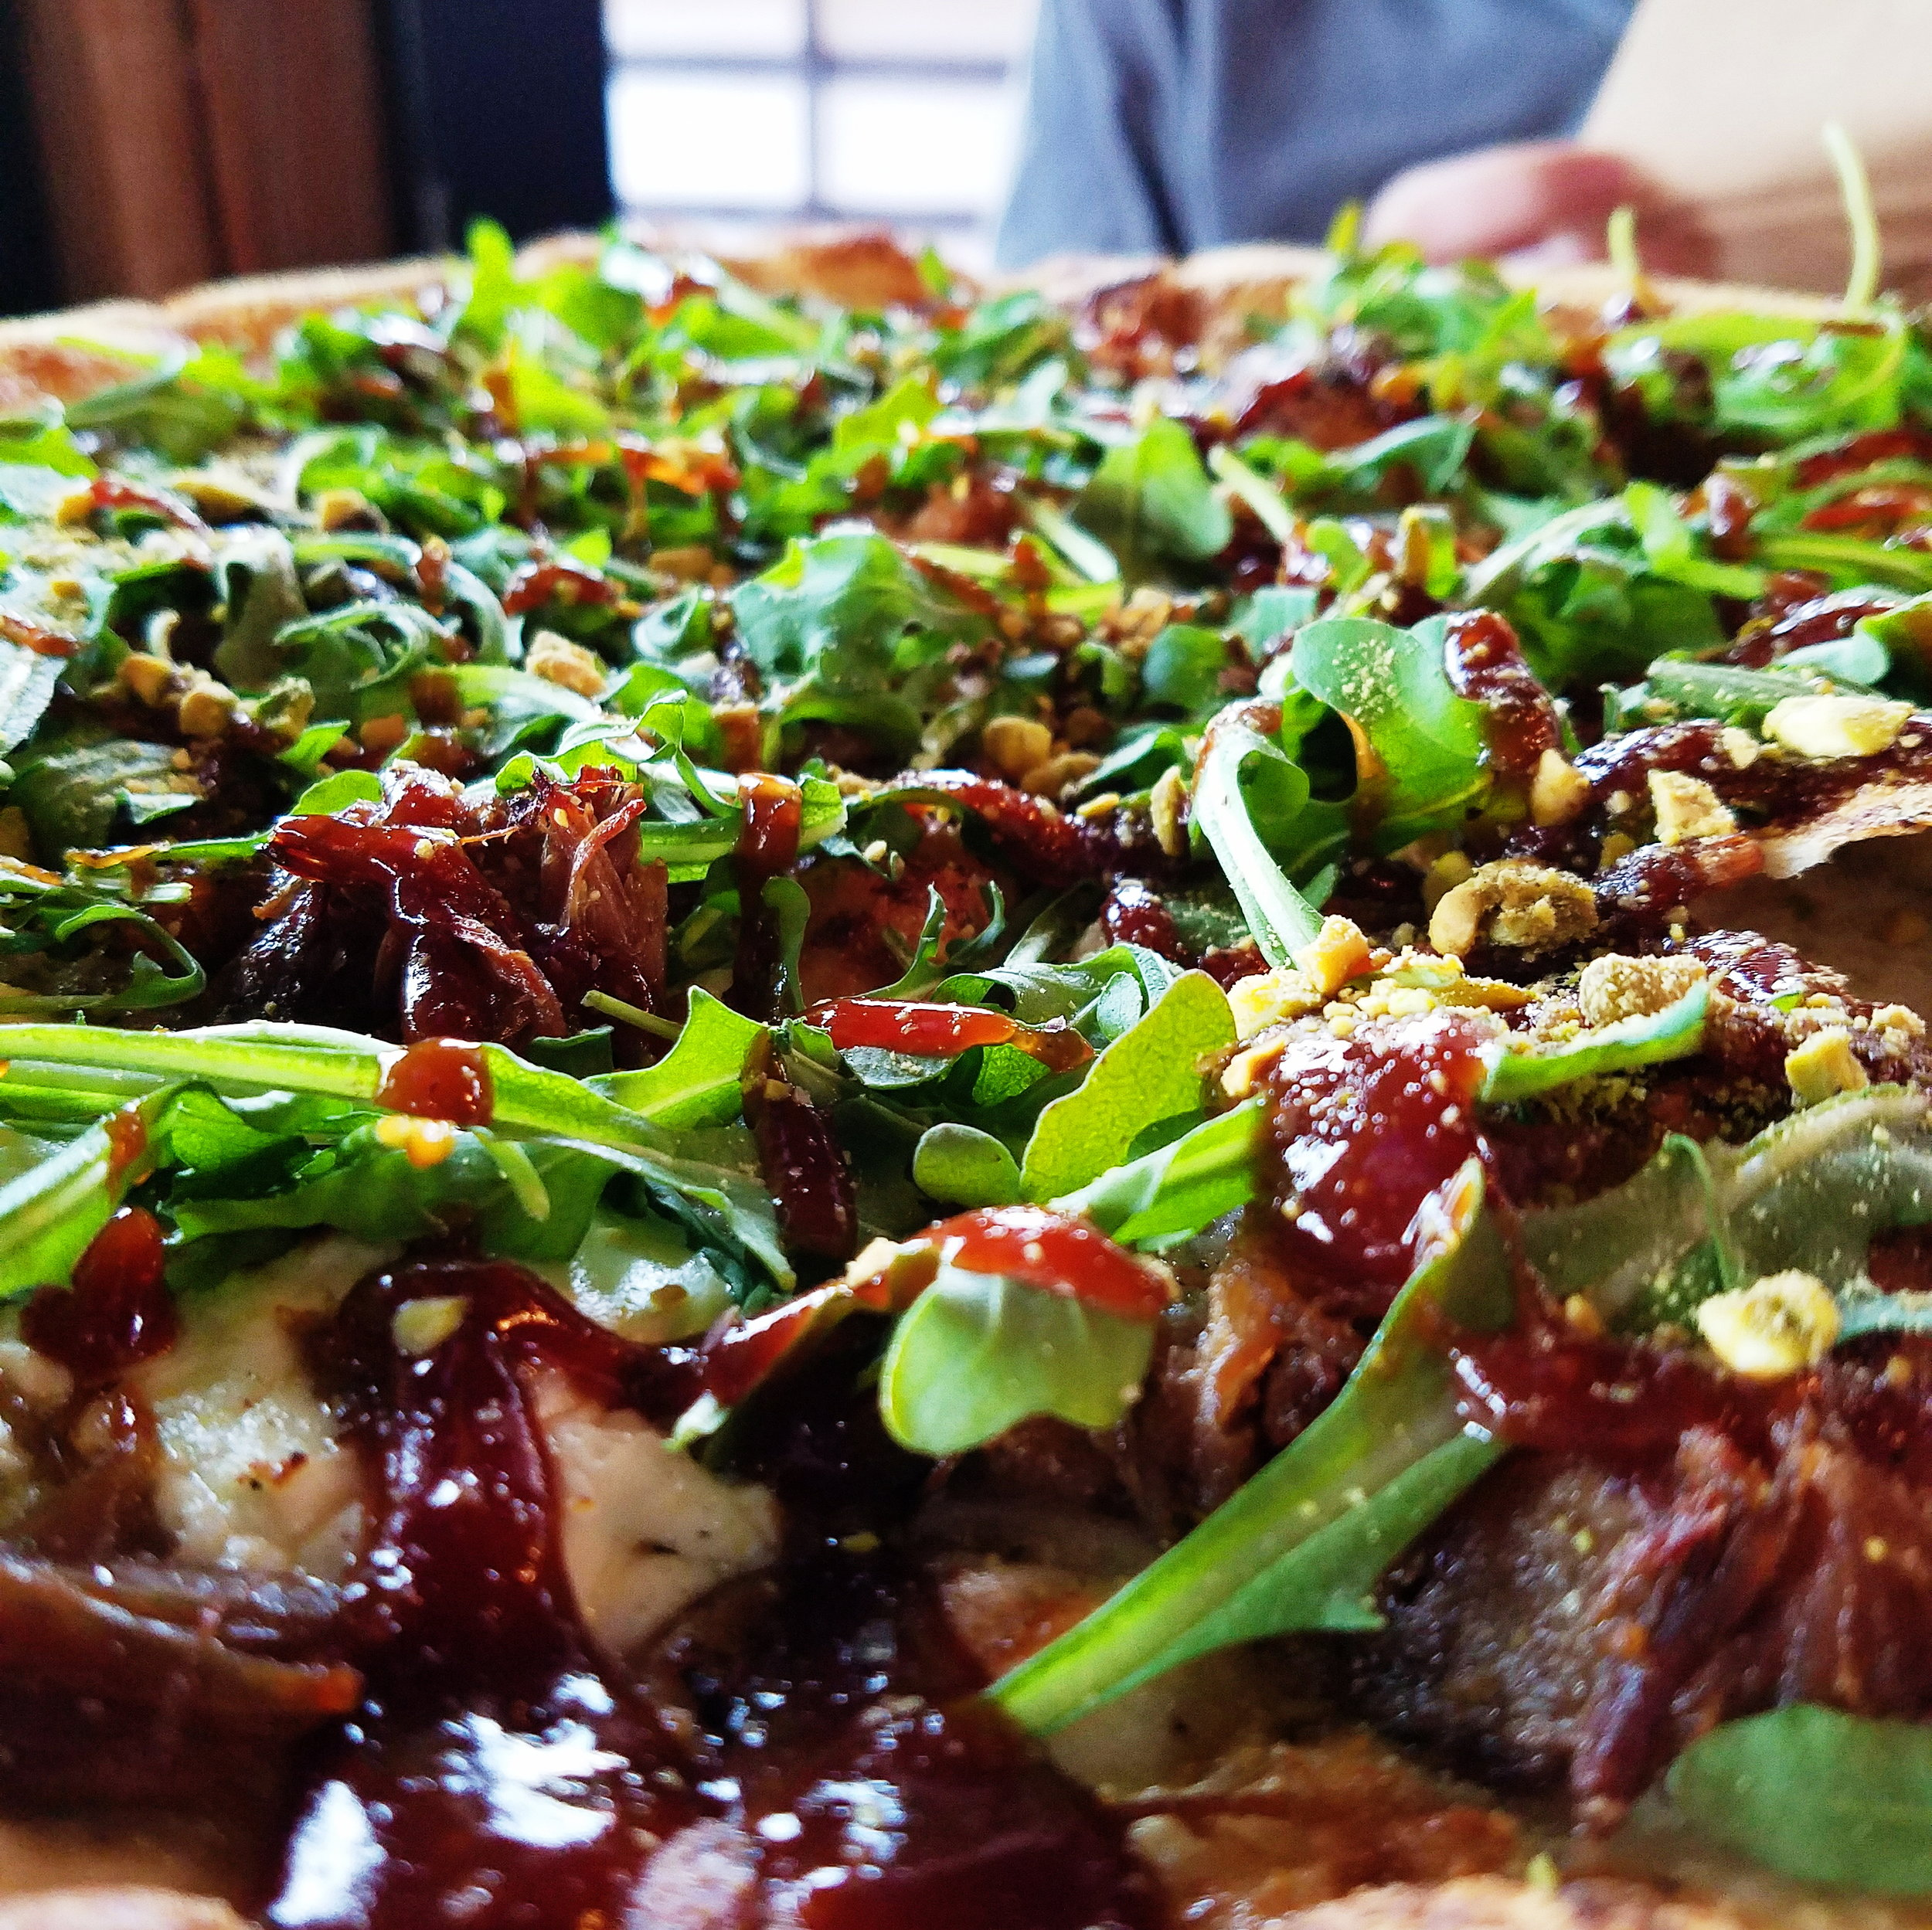 Possibly my favorite pizza of all time. Roast duck, arugula, pistachios, and goat cheese